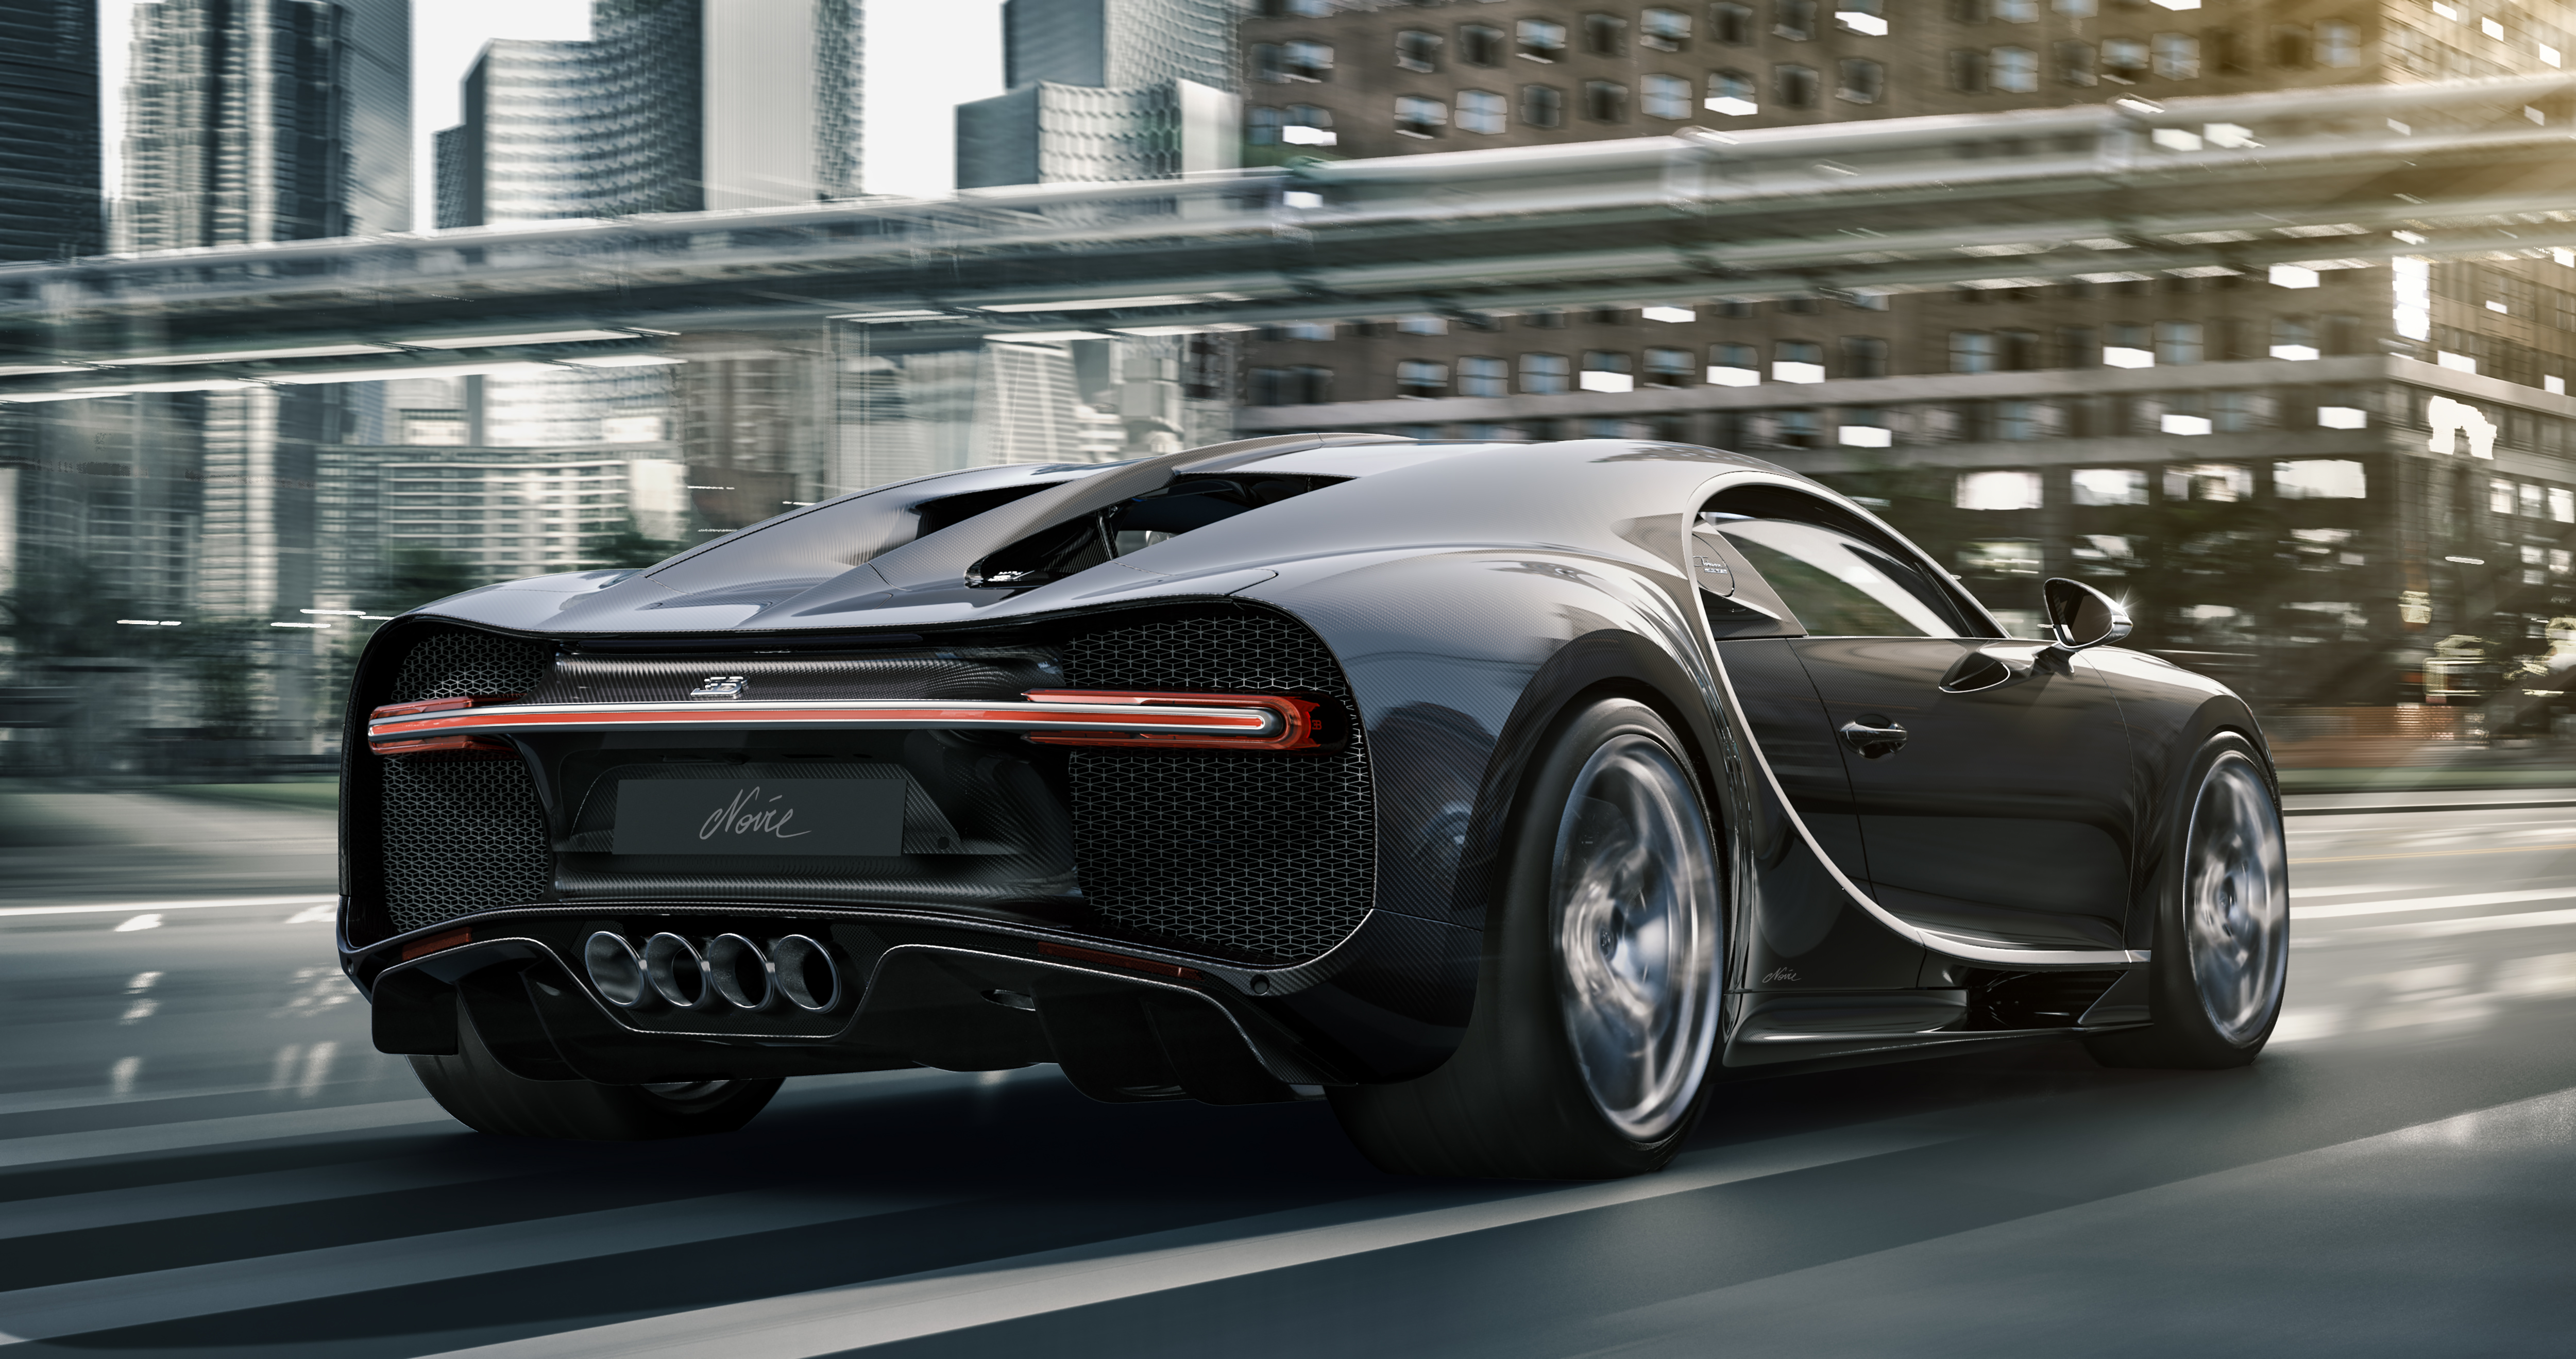 Bugatti to build 20 really, really black Chiron Noire hypercars